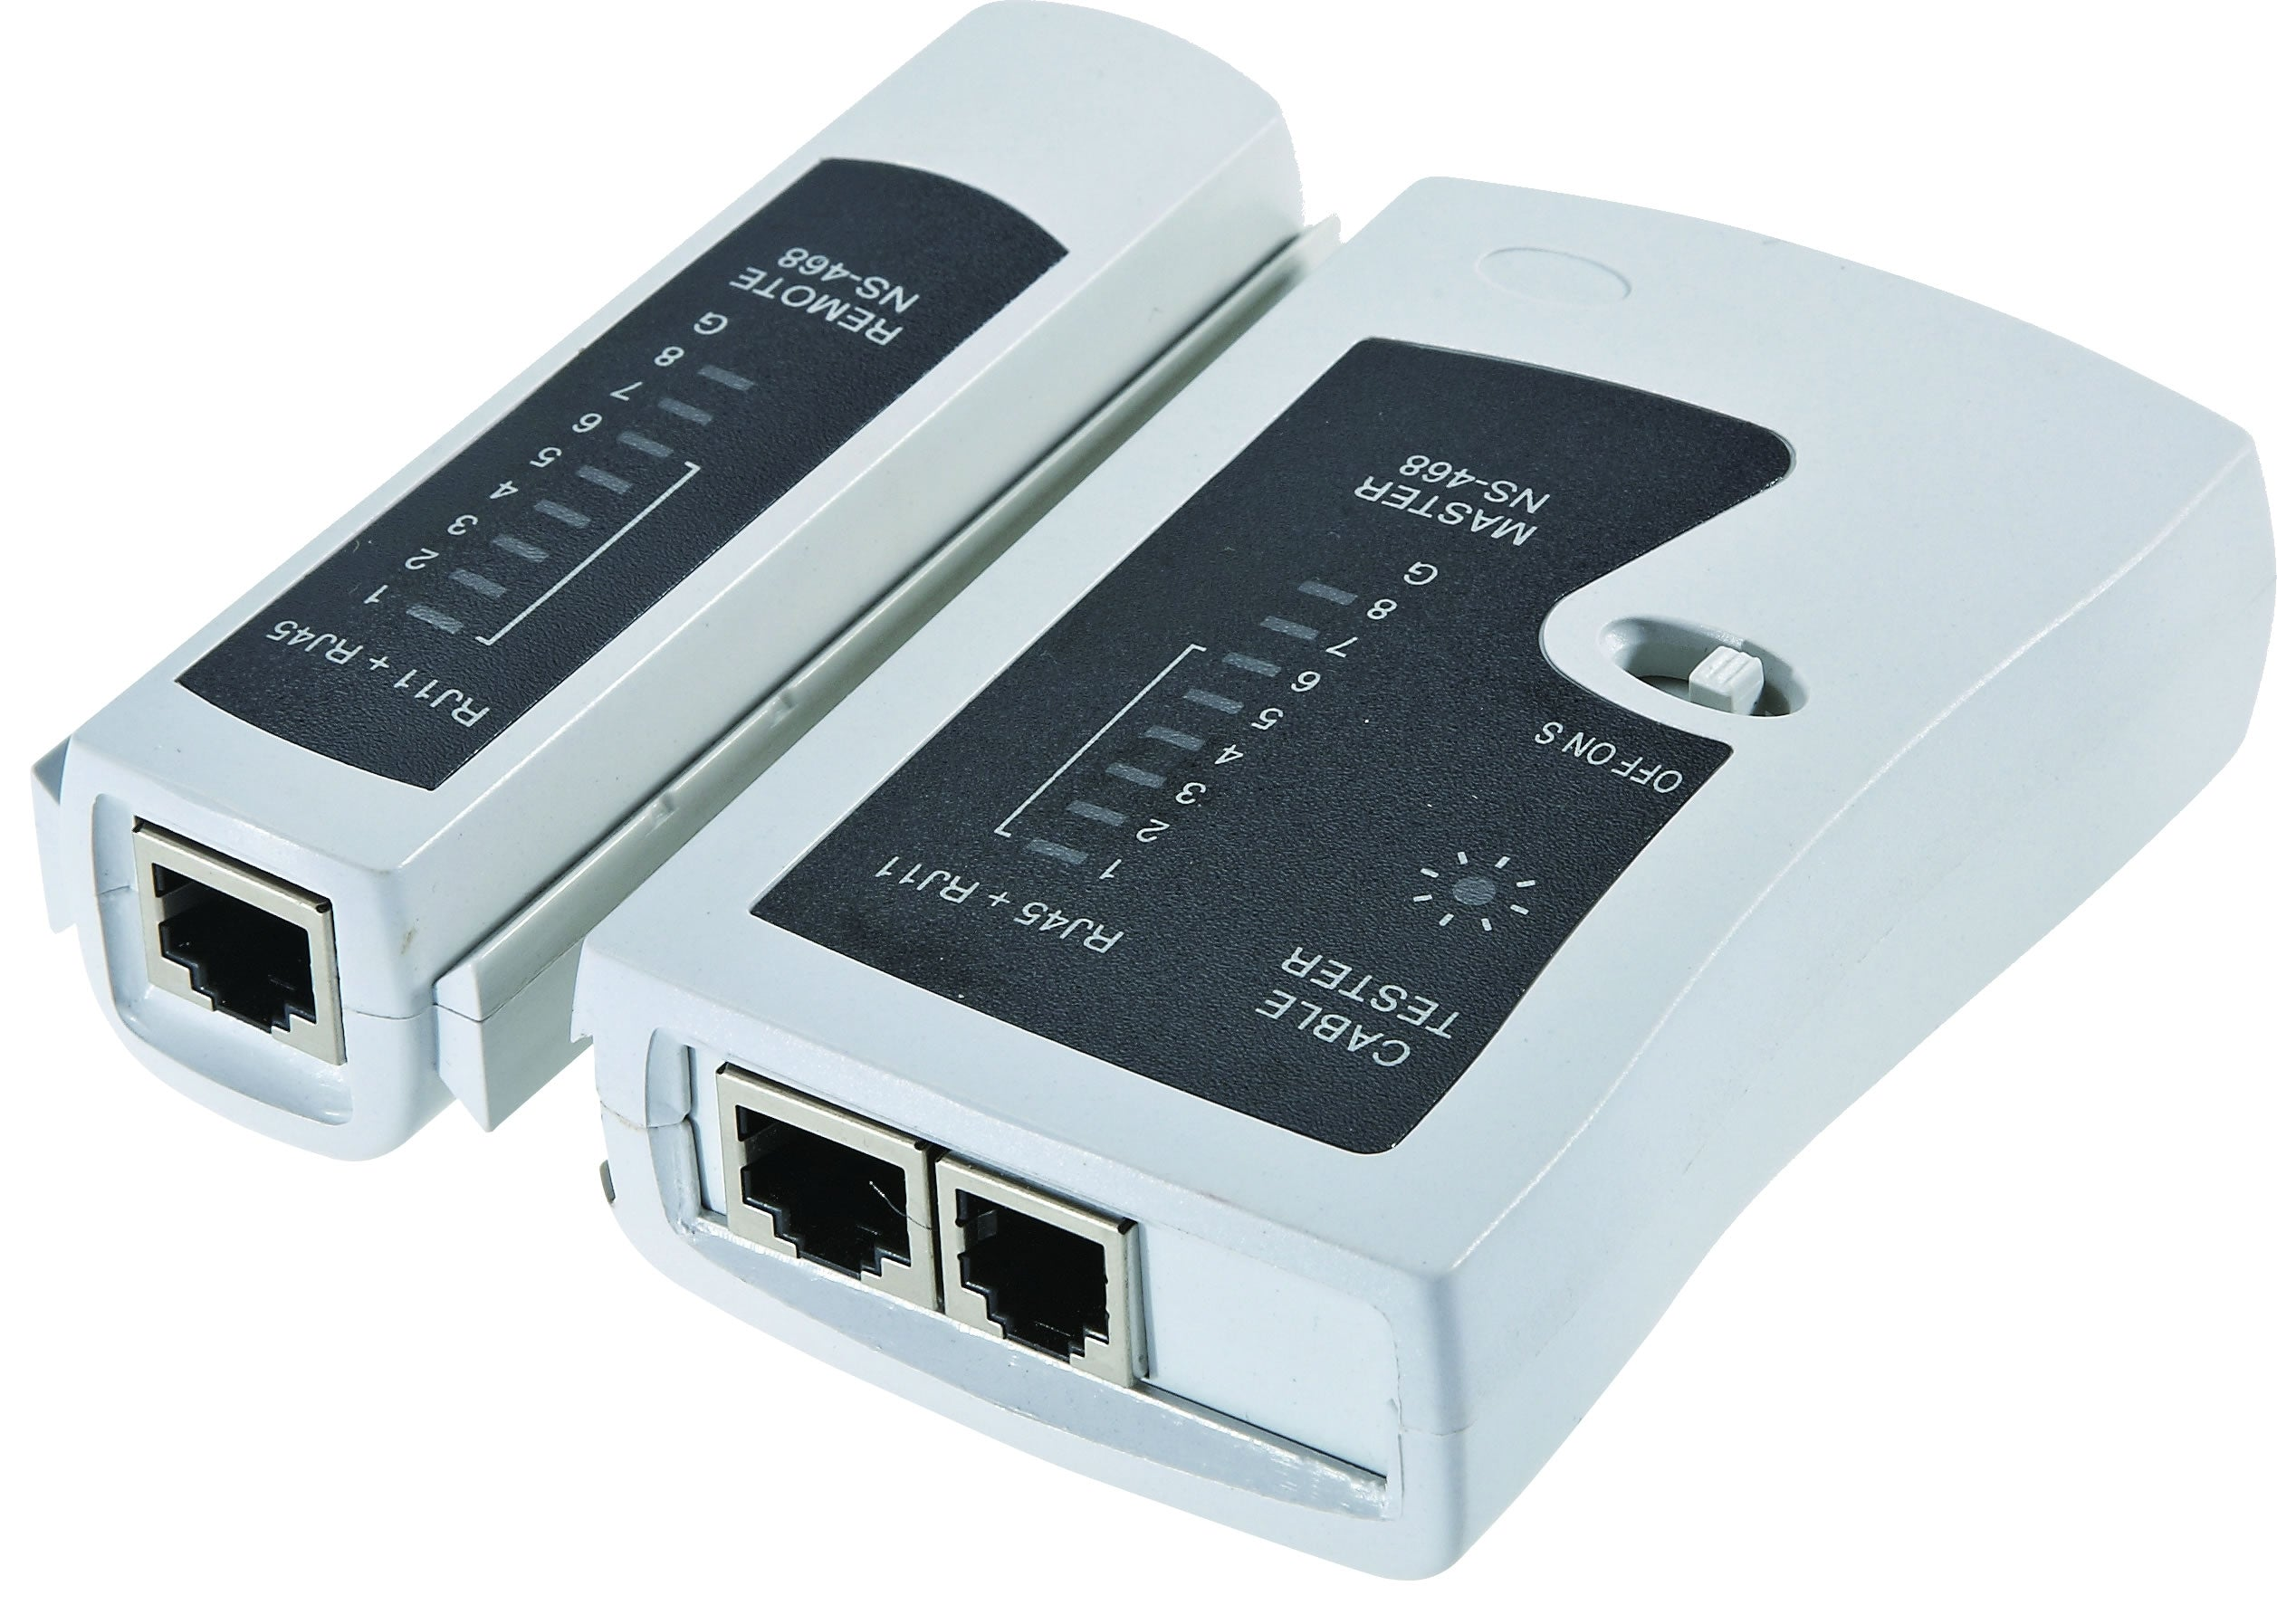 50-4871 Network Cable Tester for RJ11 / RJ12 / RJ45